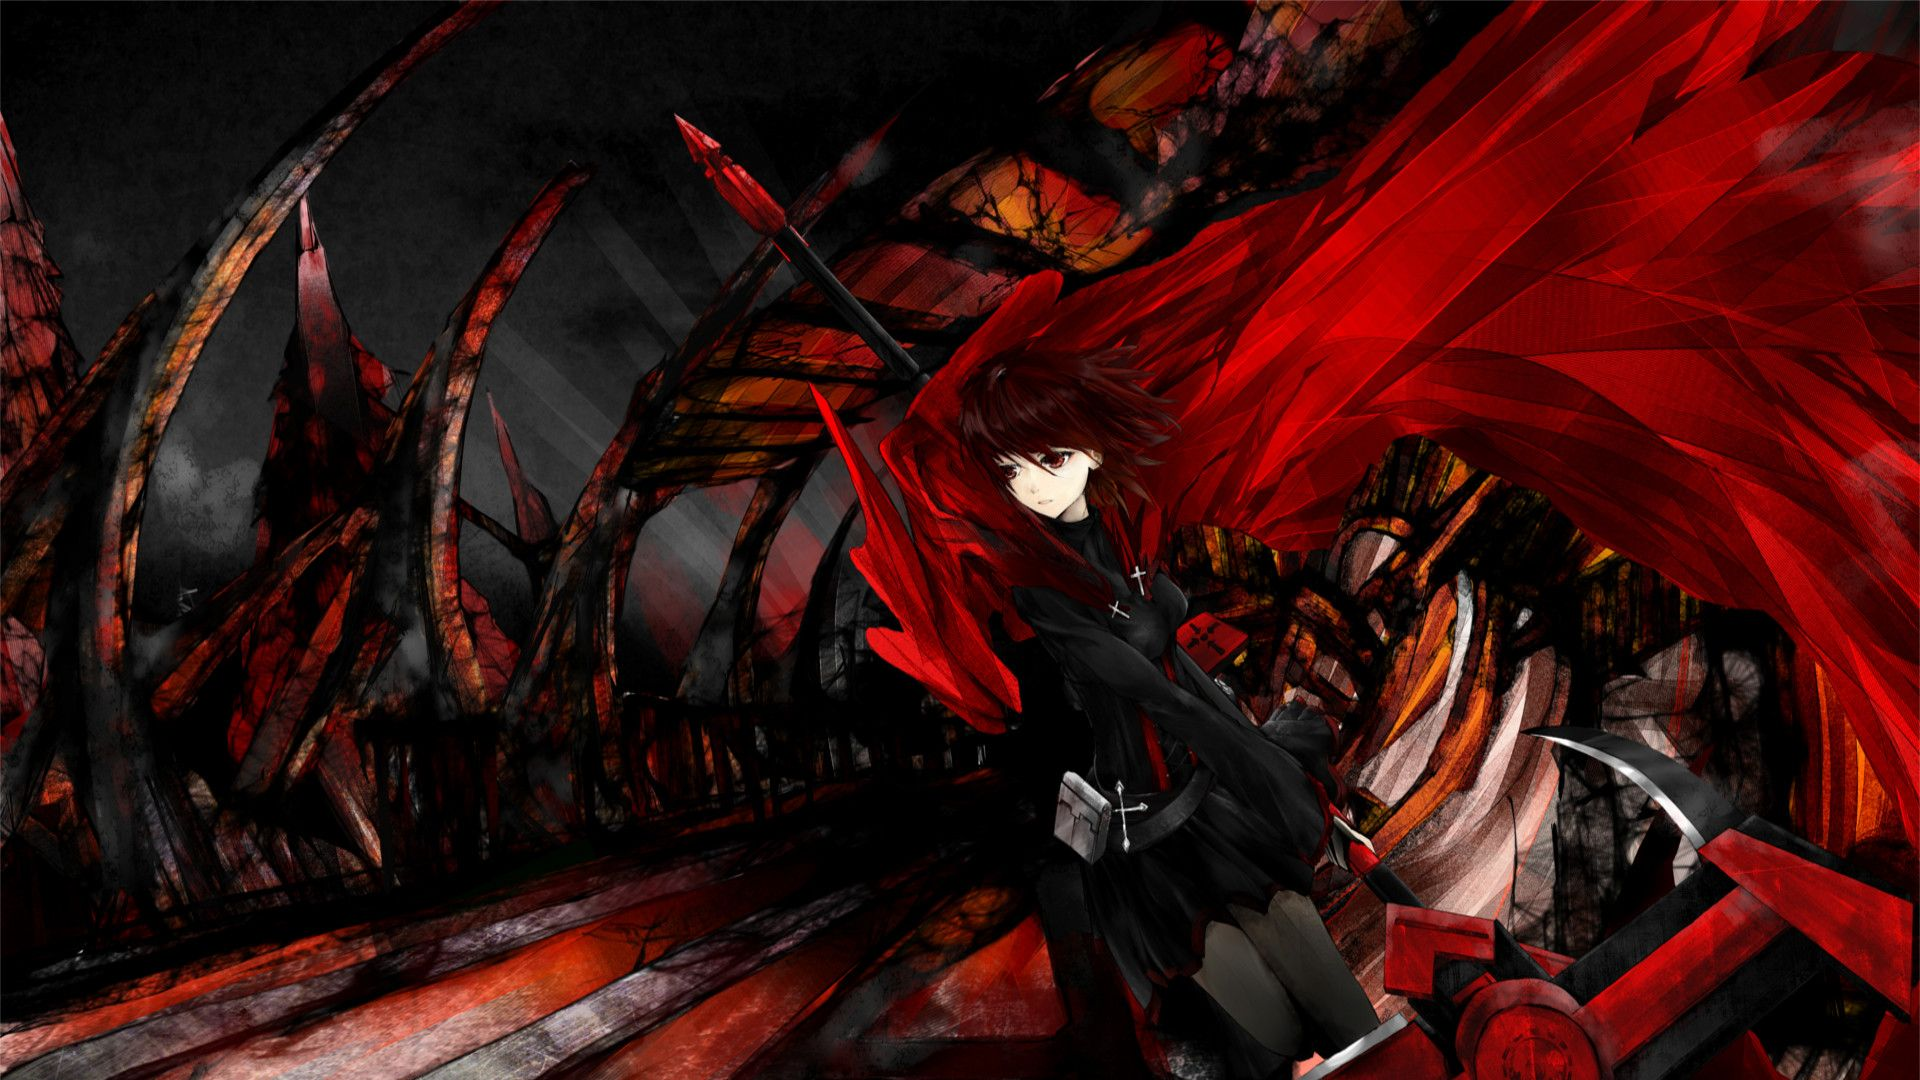 1920x1080 Red and Black Anime Wallpaper (72+ images)